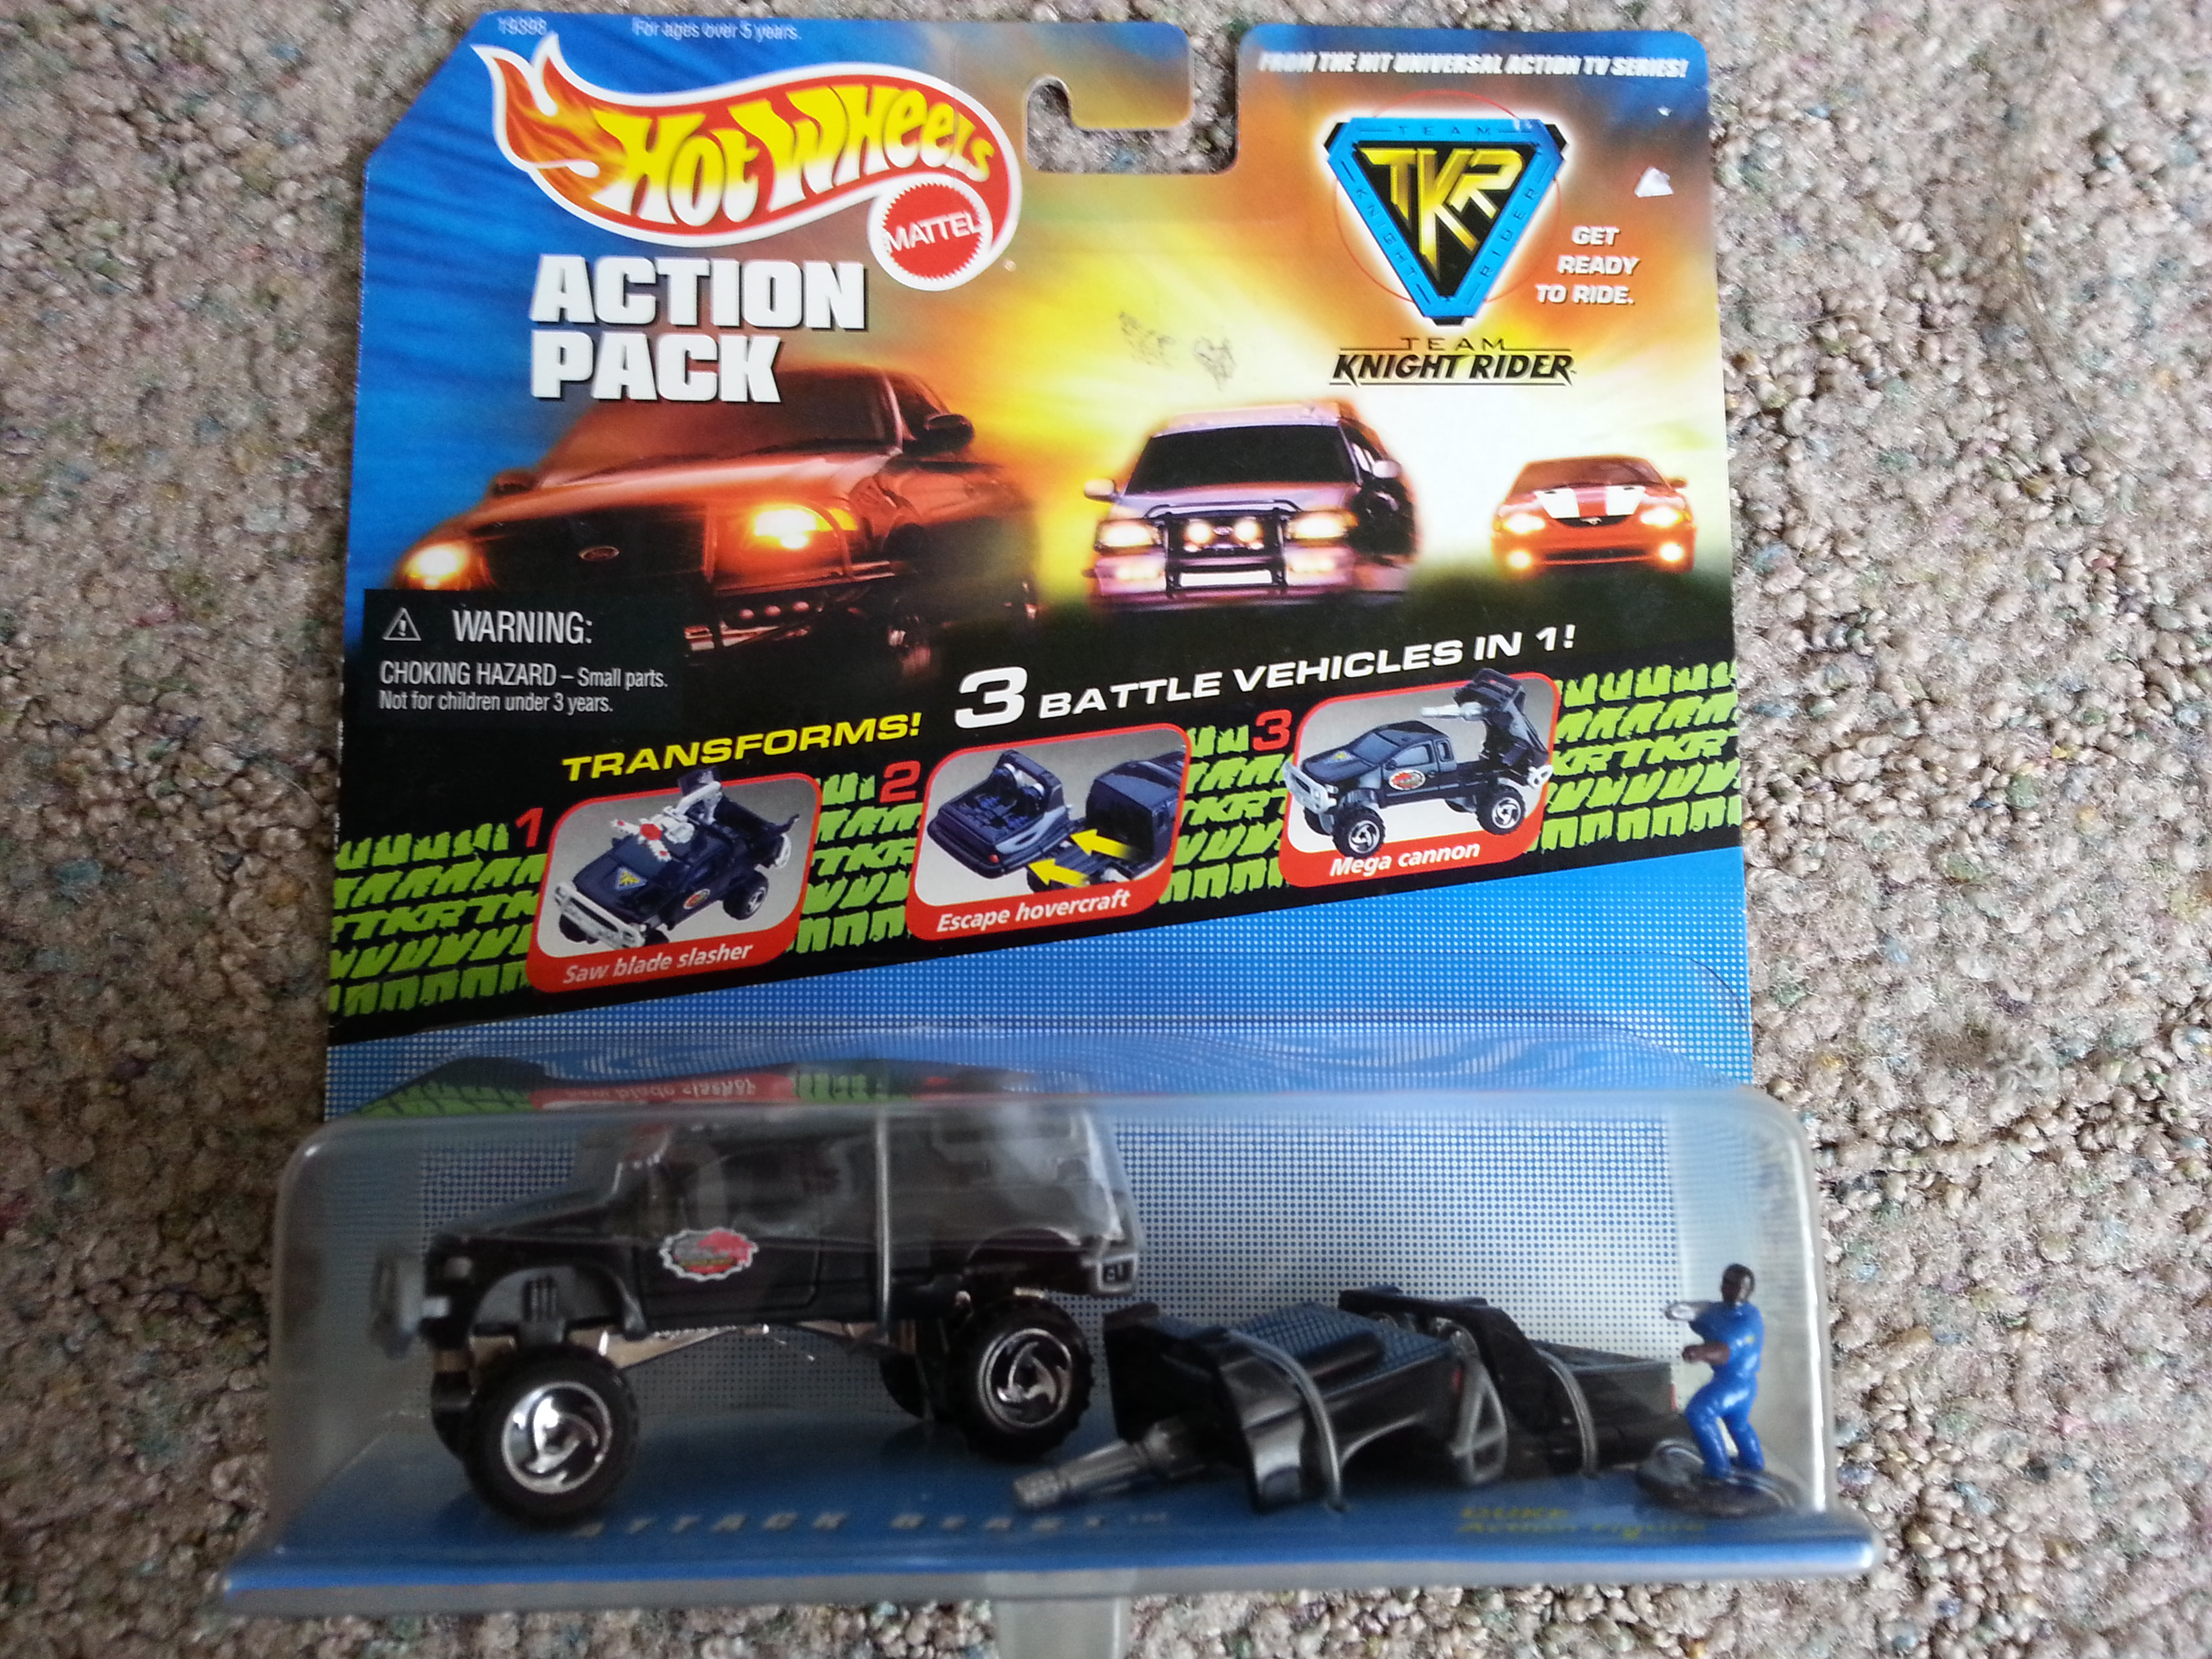 Team Knight Rider: Attack Beast Action Pack